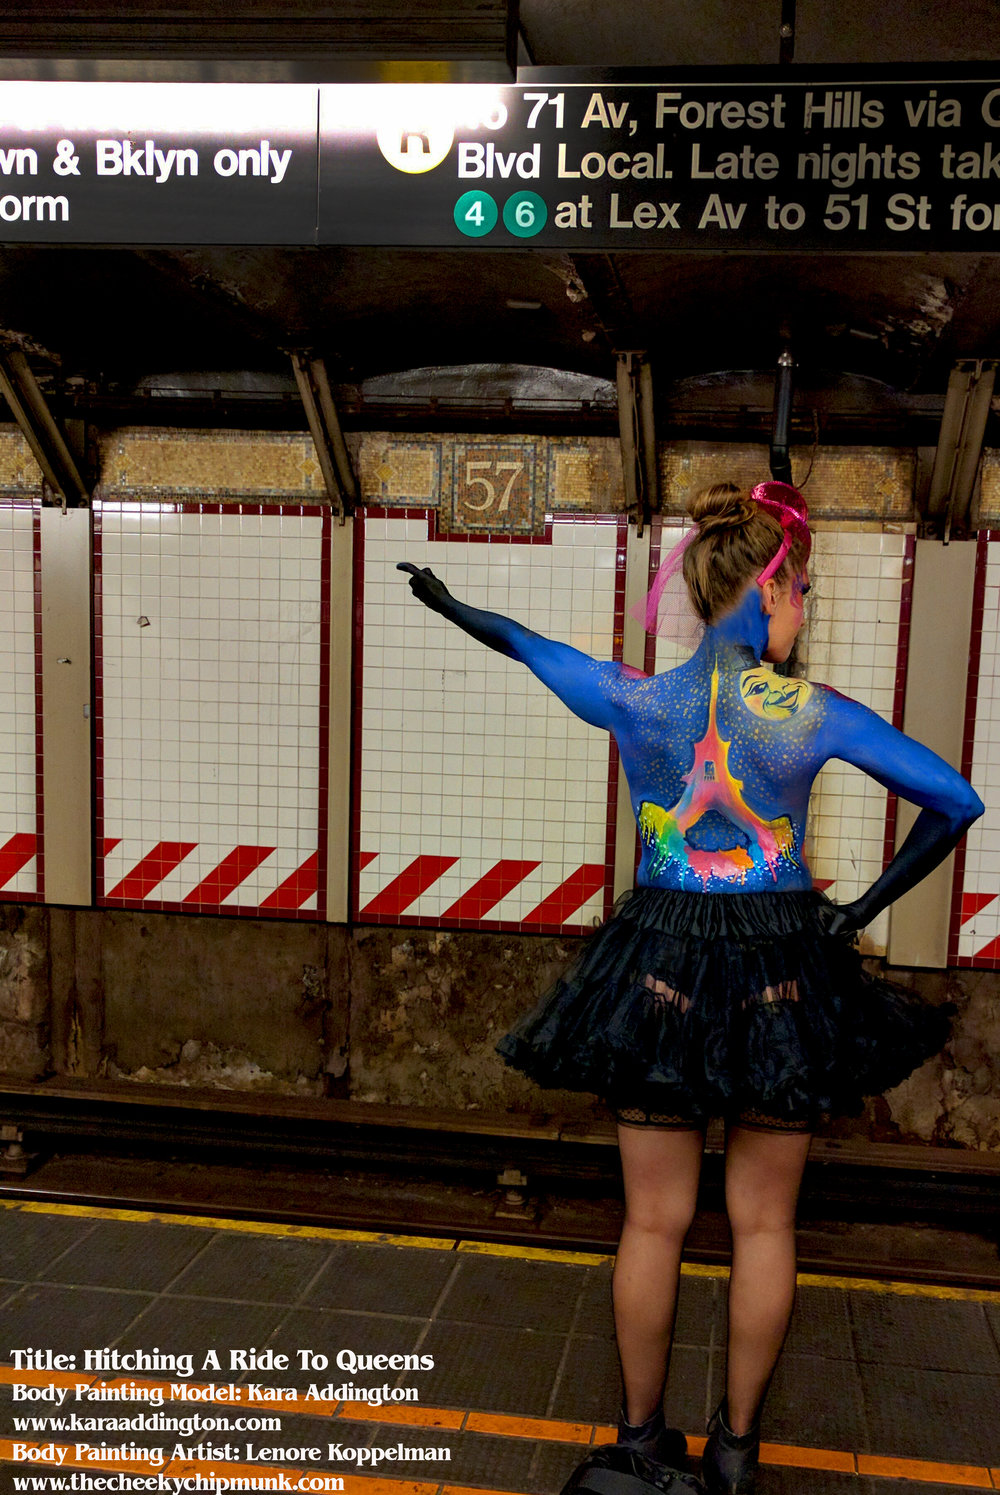 kara addington moulin rouge subway hitchhiking to queens 2 bound train.jpg